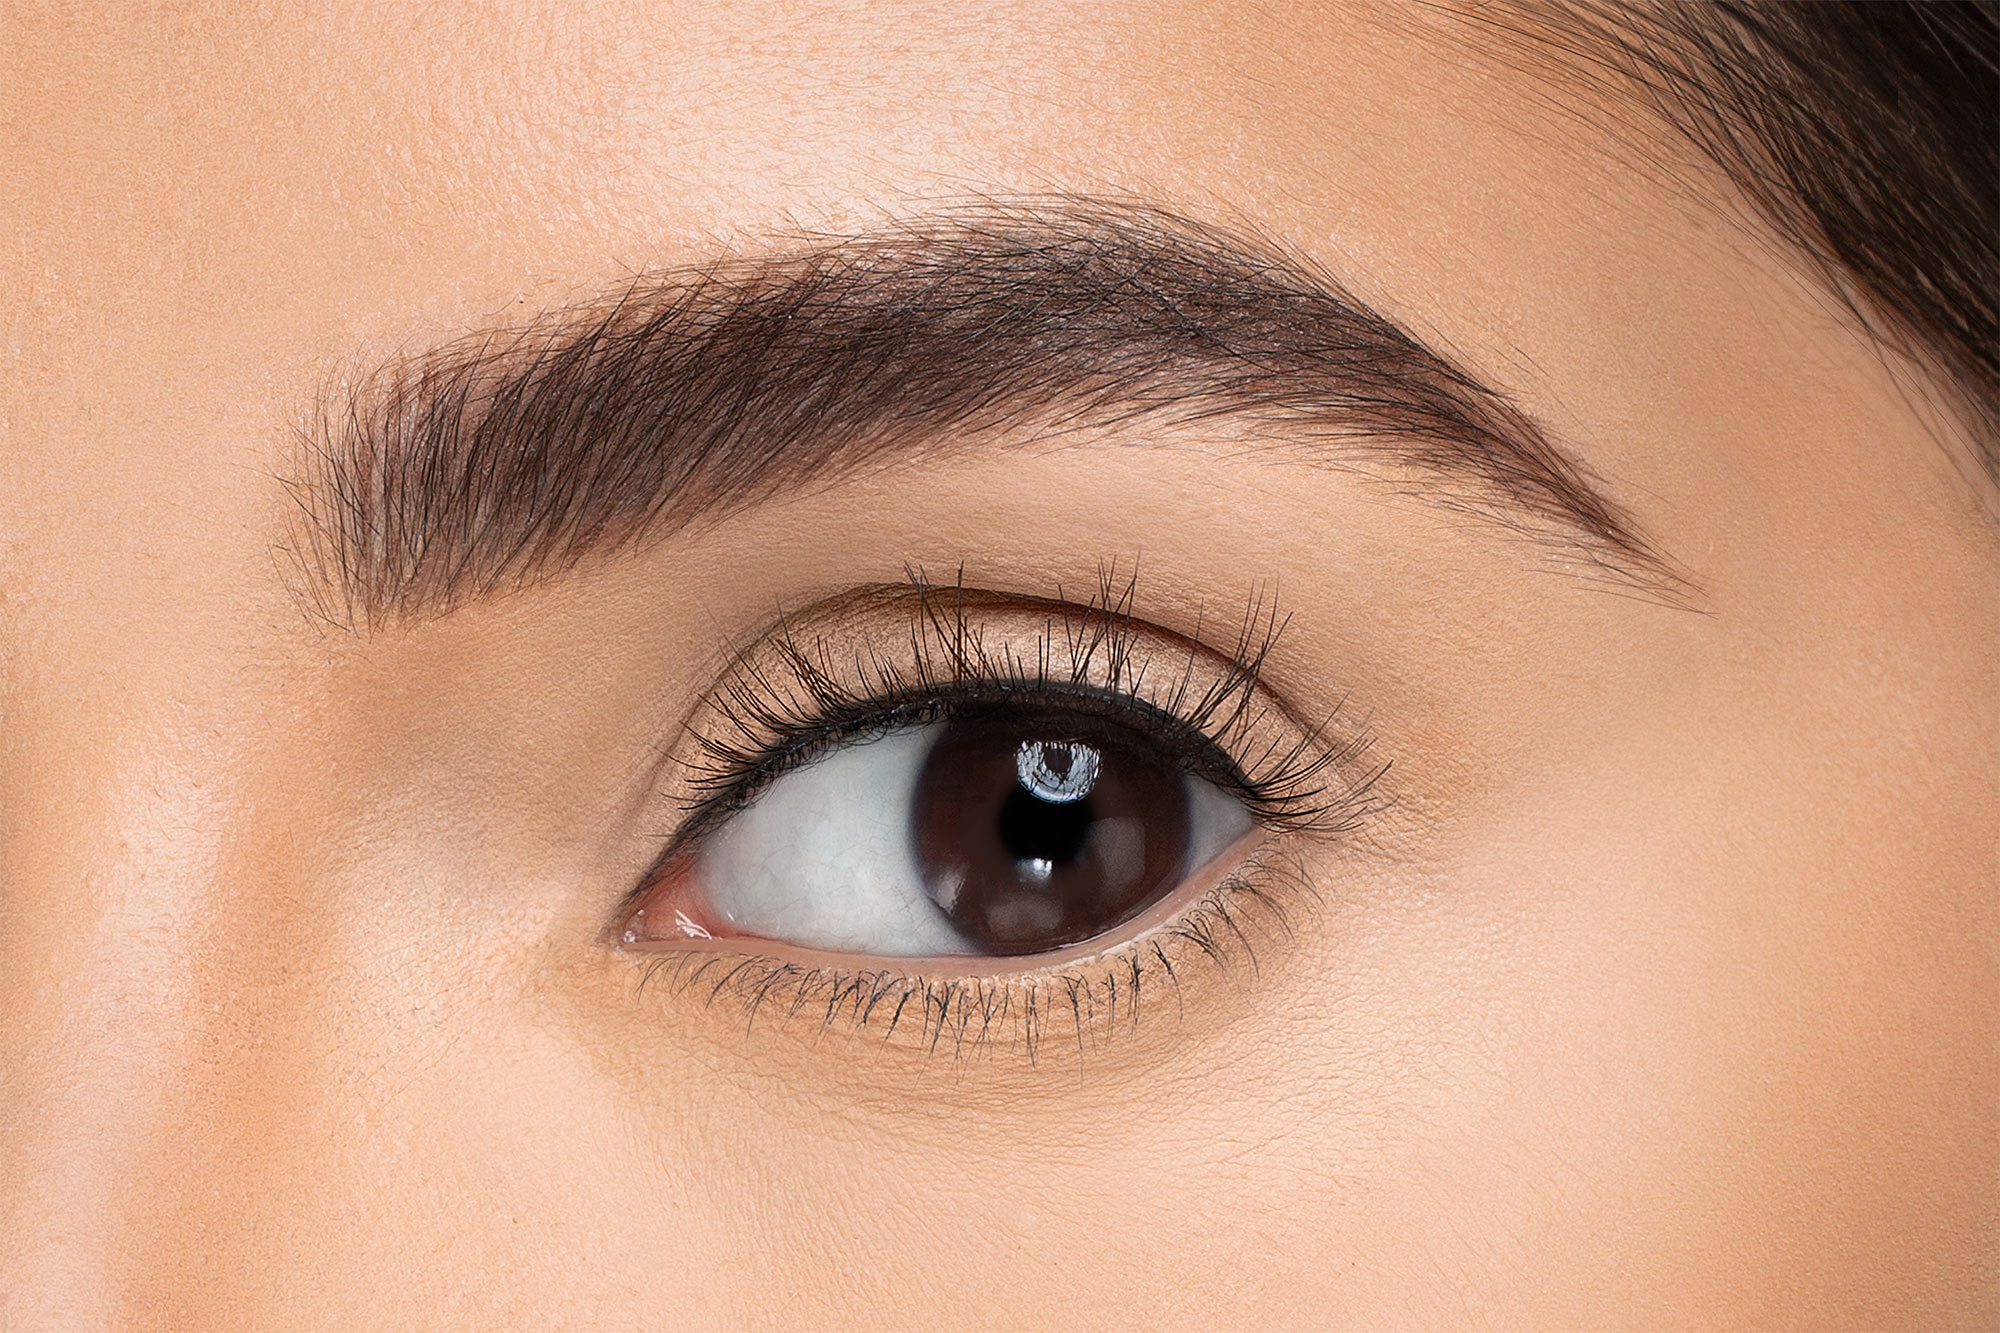 Carey False Eyelashes, close up of ladies eye wearing false eyelash